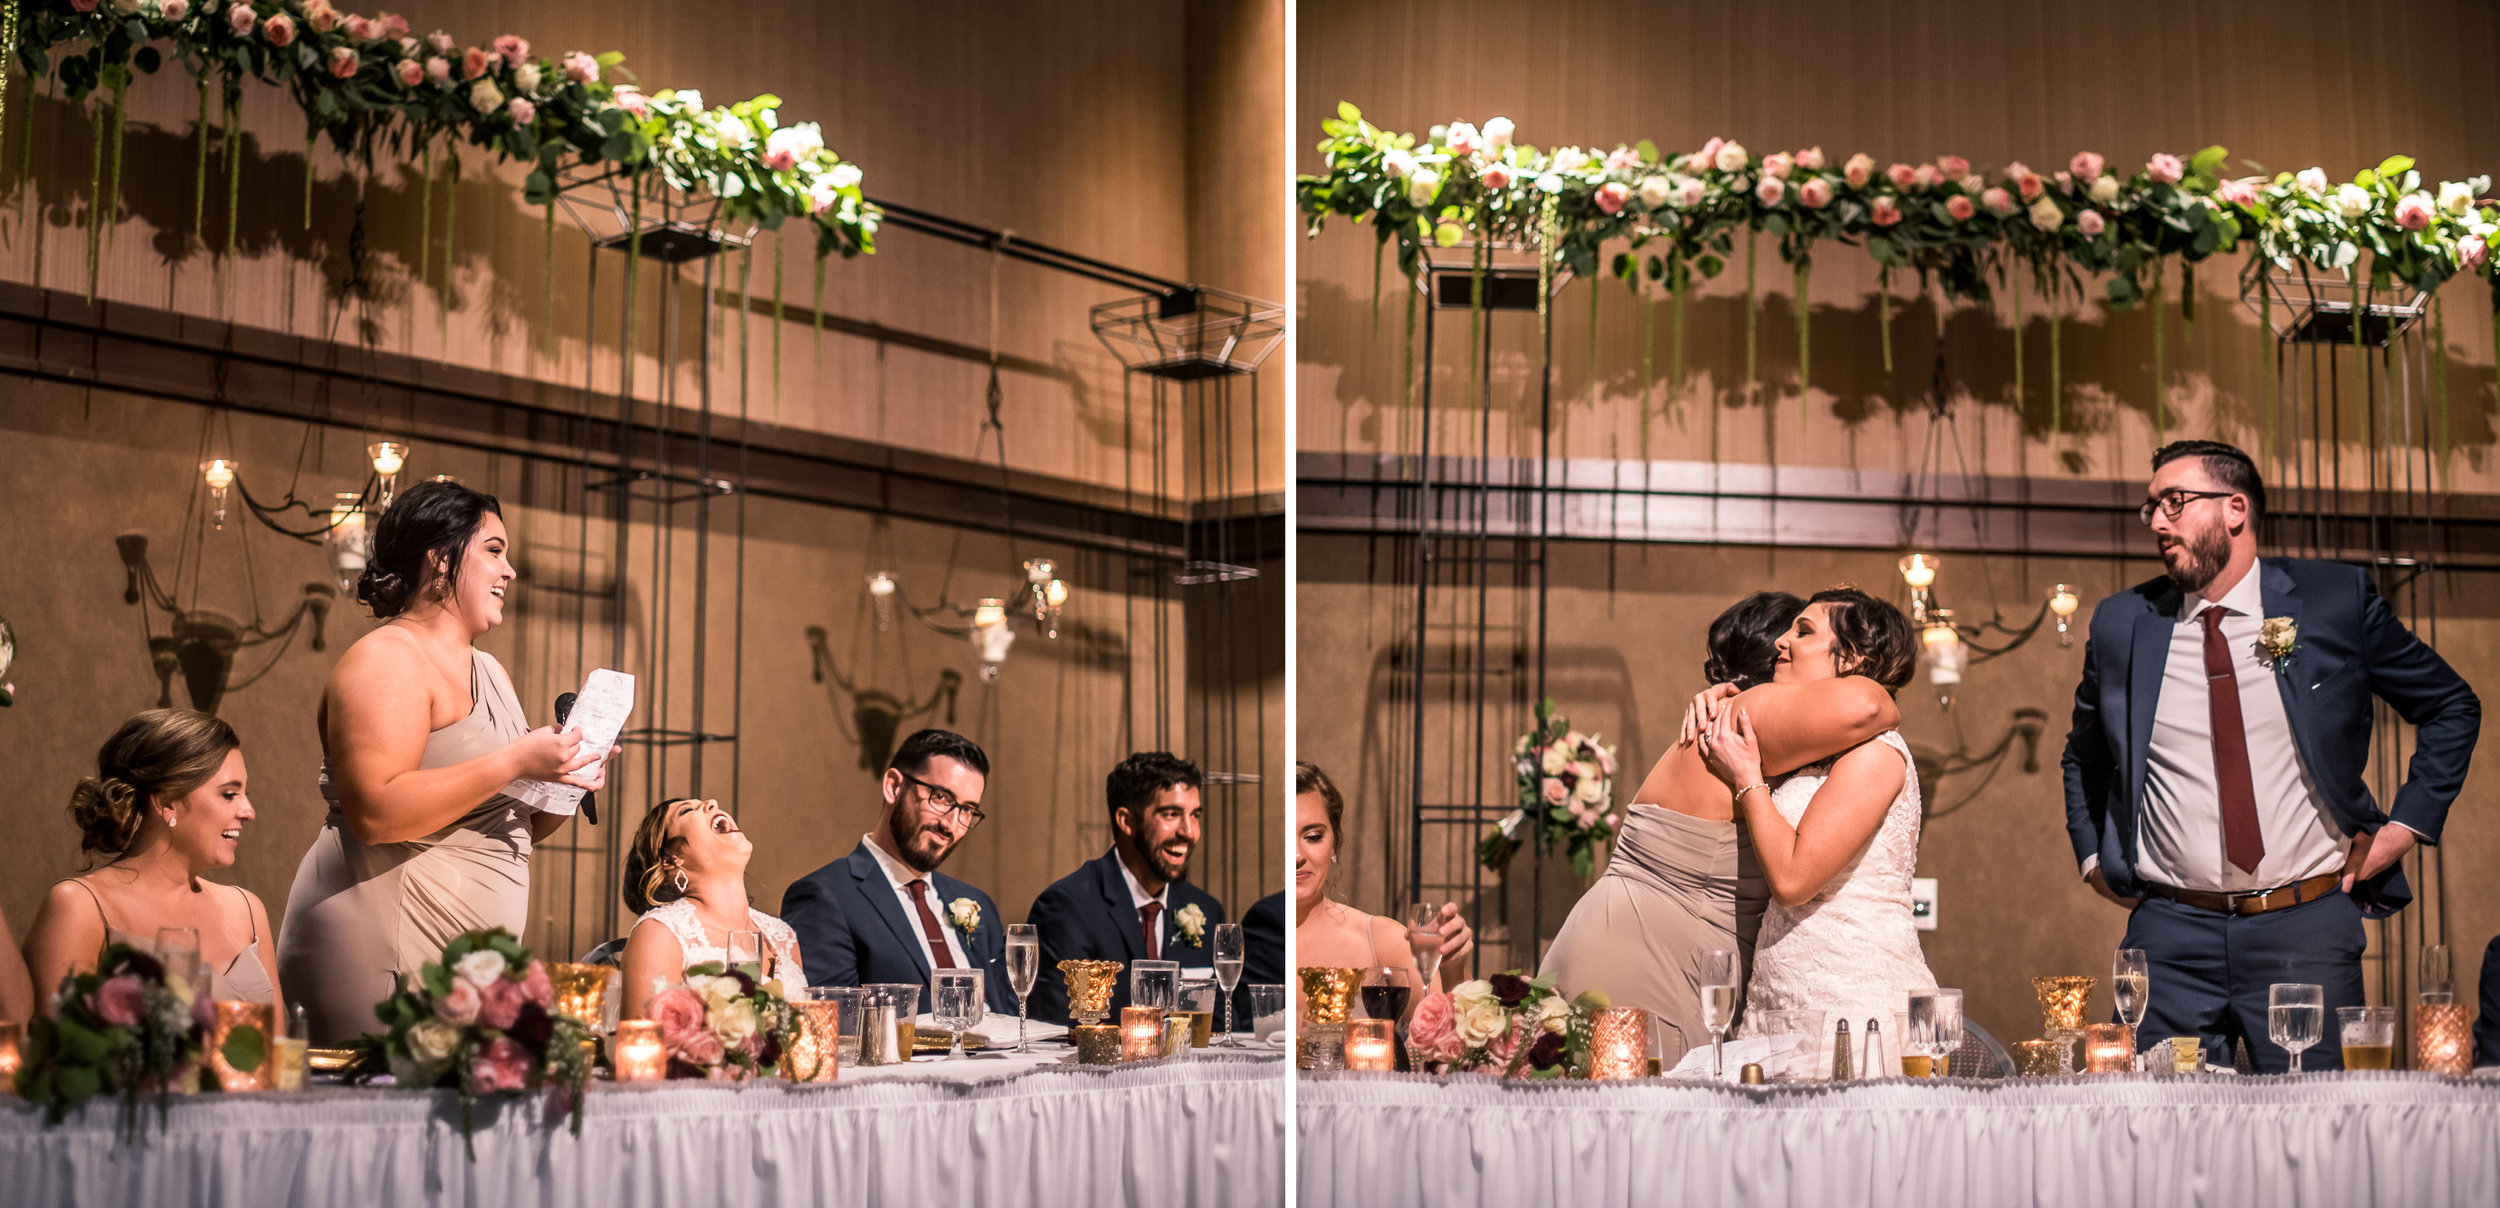 Melissa Cervantes Photography _ Kelsey + Ben Junebug Weddings Submission-133.jpg